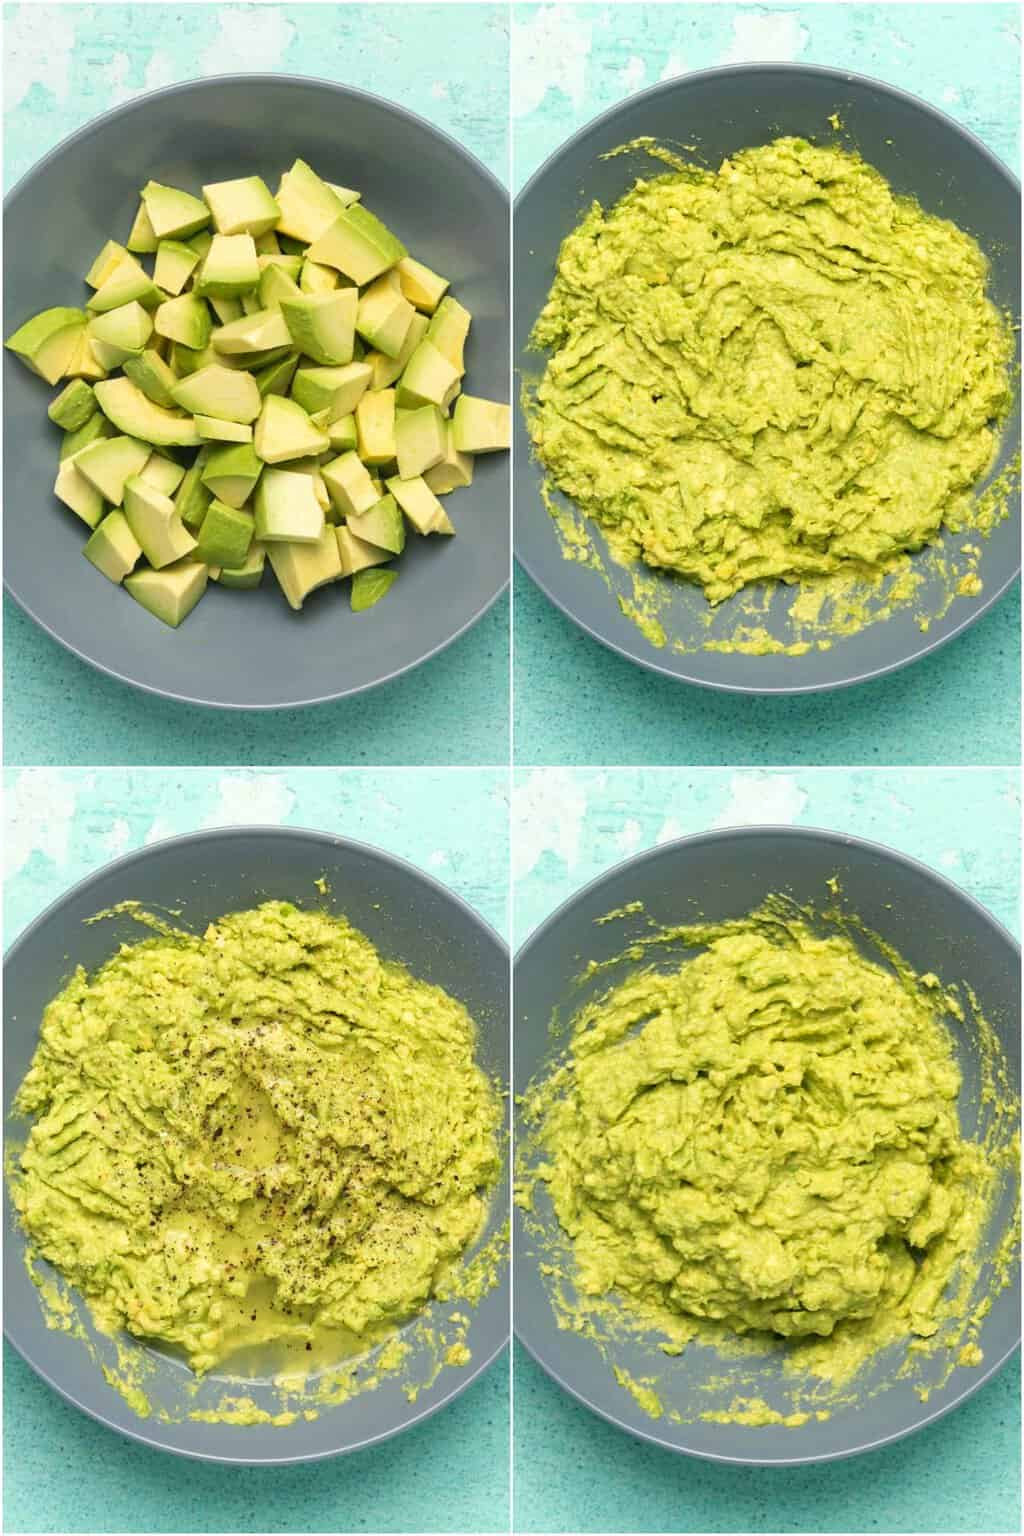 Step by step process photo collage of making guacamole for vegan burrito bowls